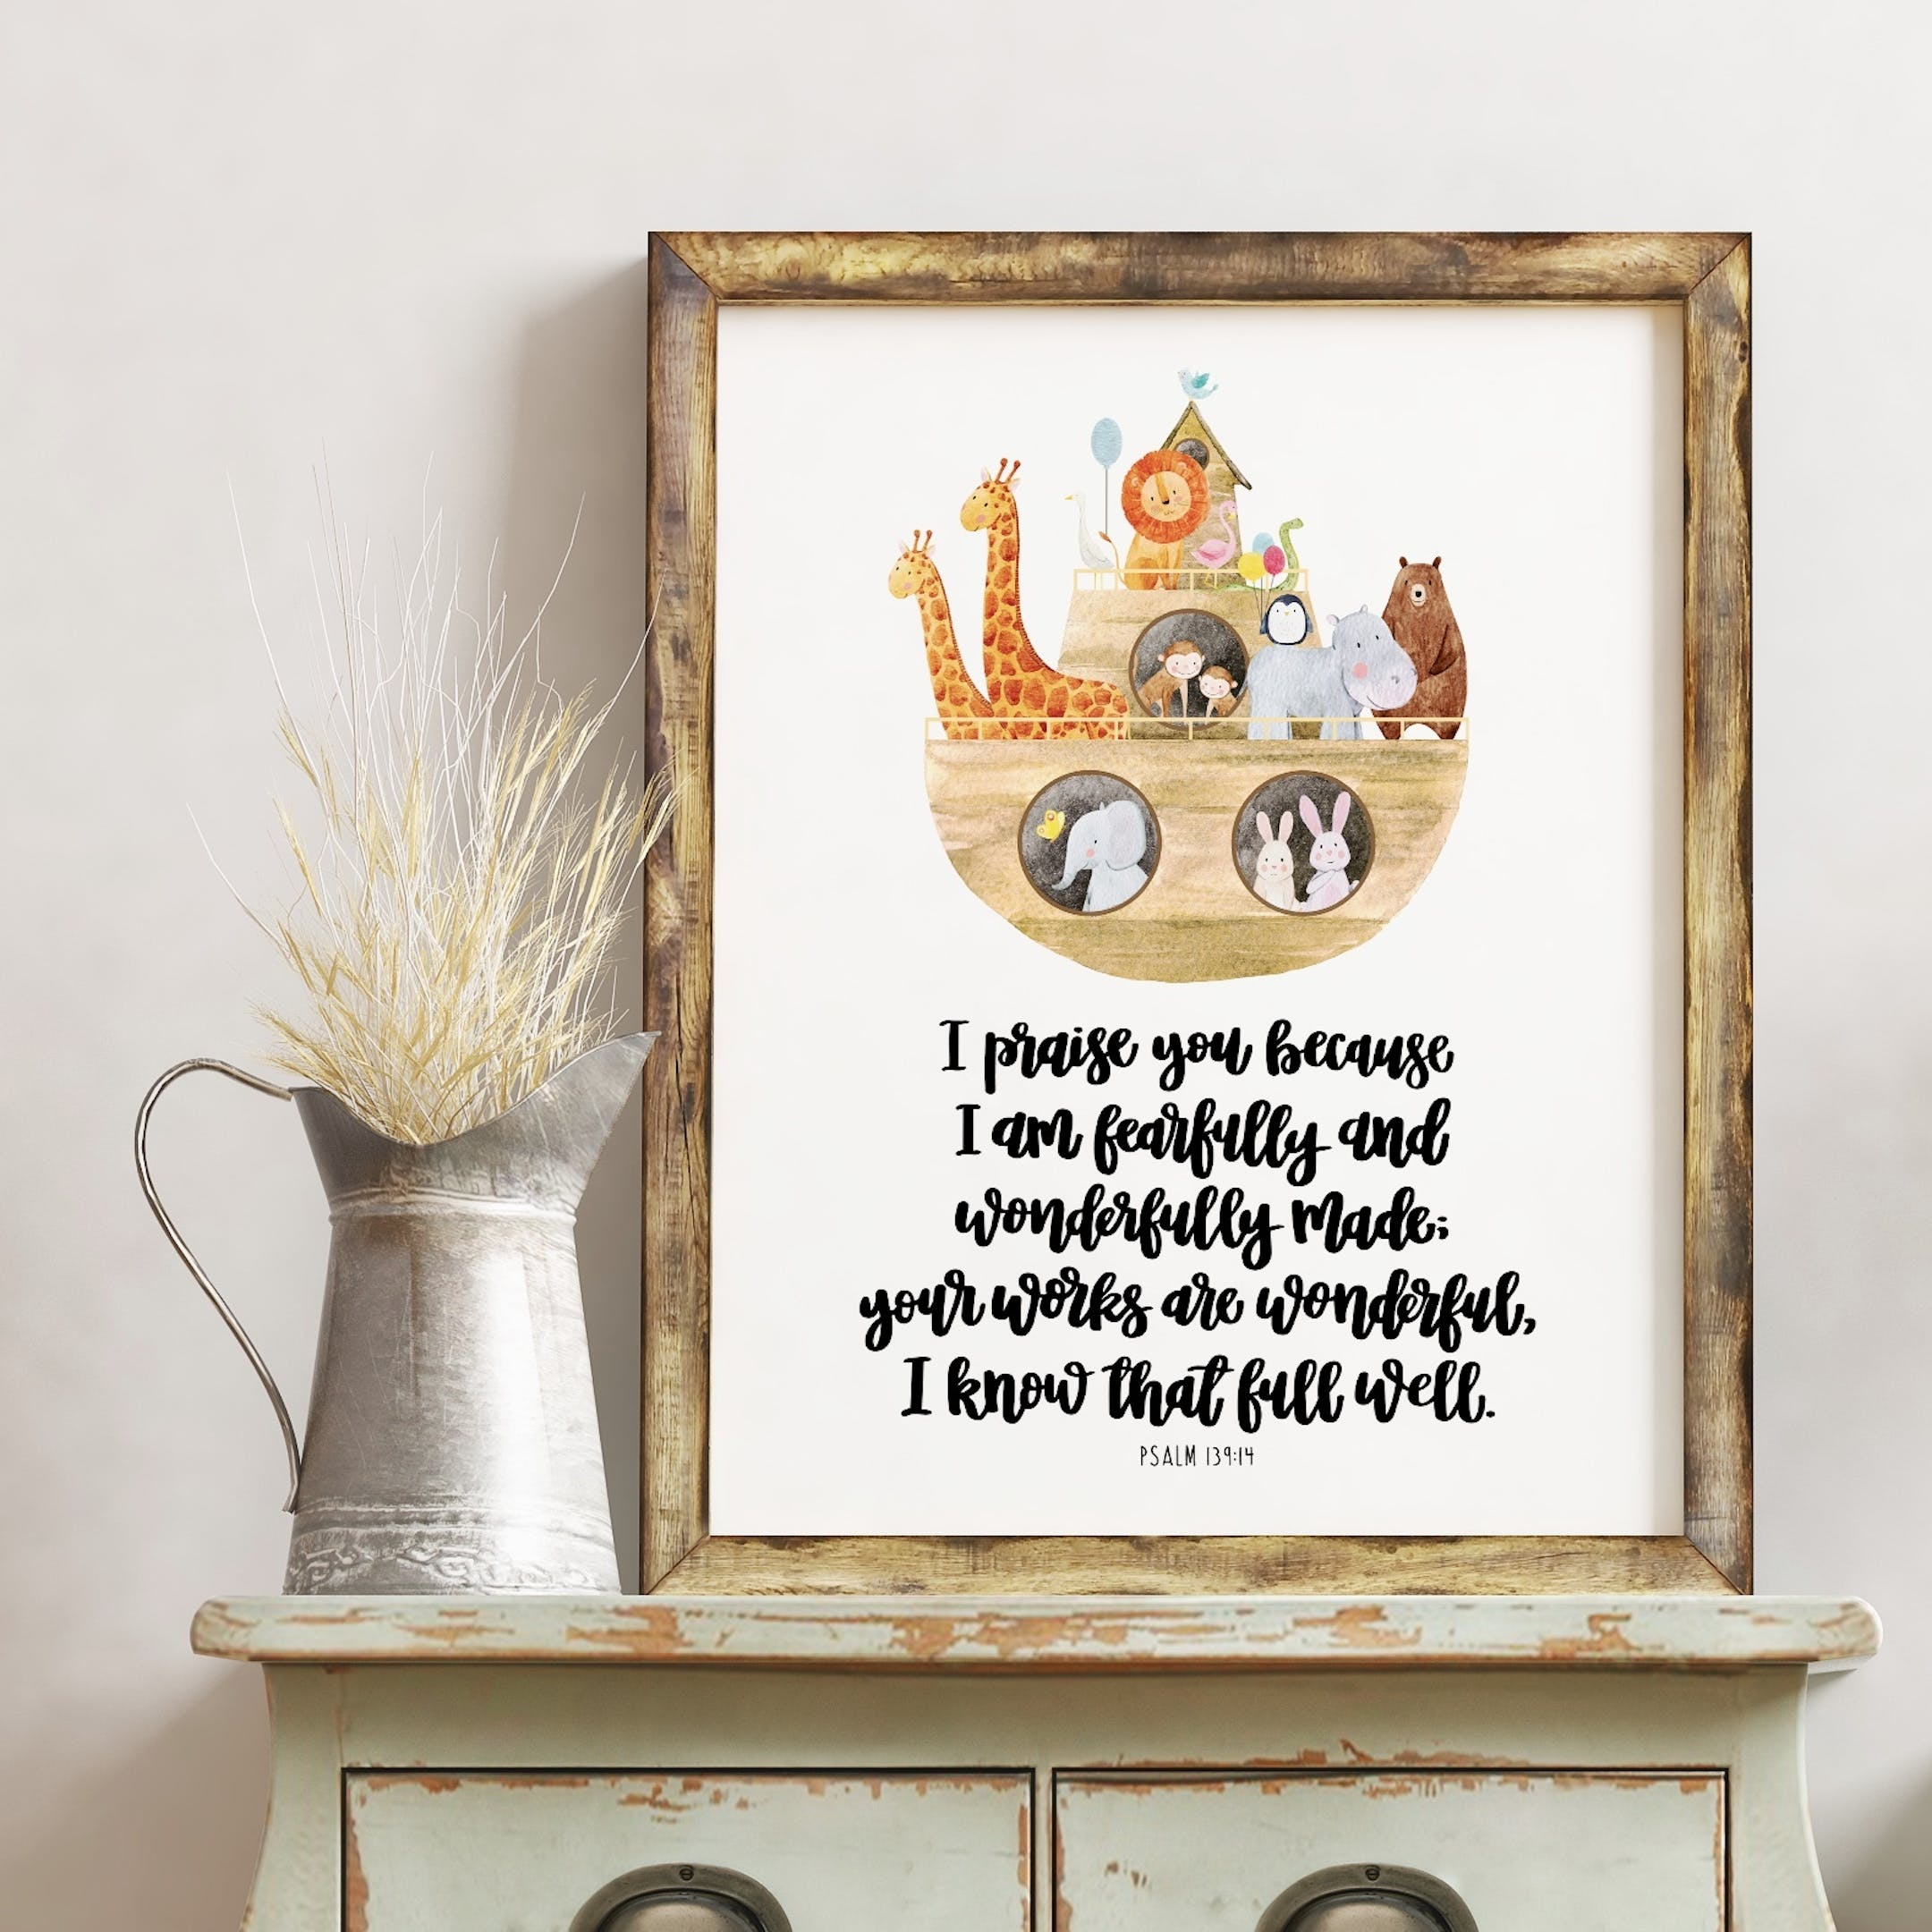 I Am Fearfully And Wonderfully Made Print - Psalm 139:14 - Izzy and Pop